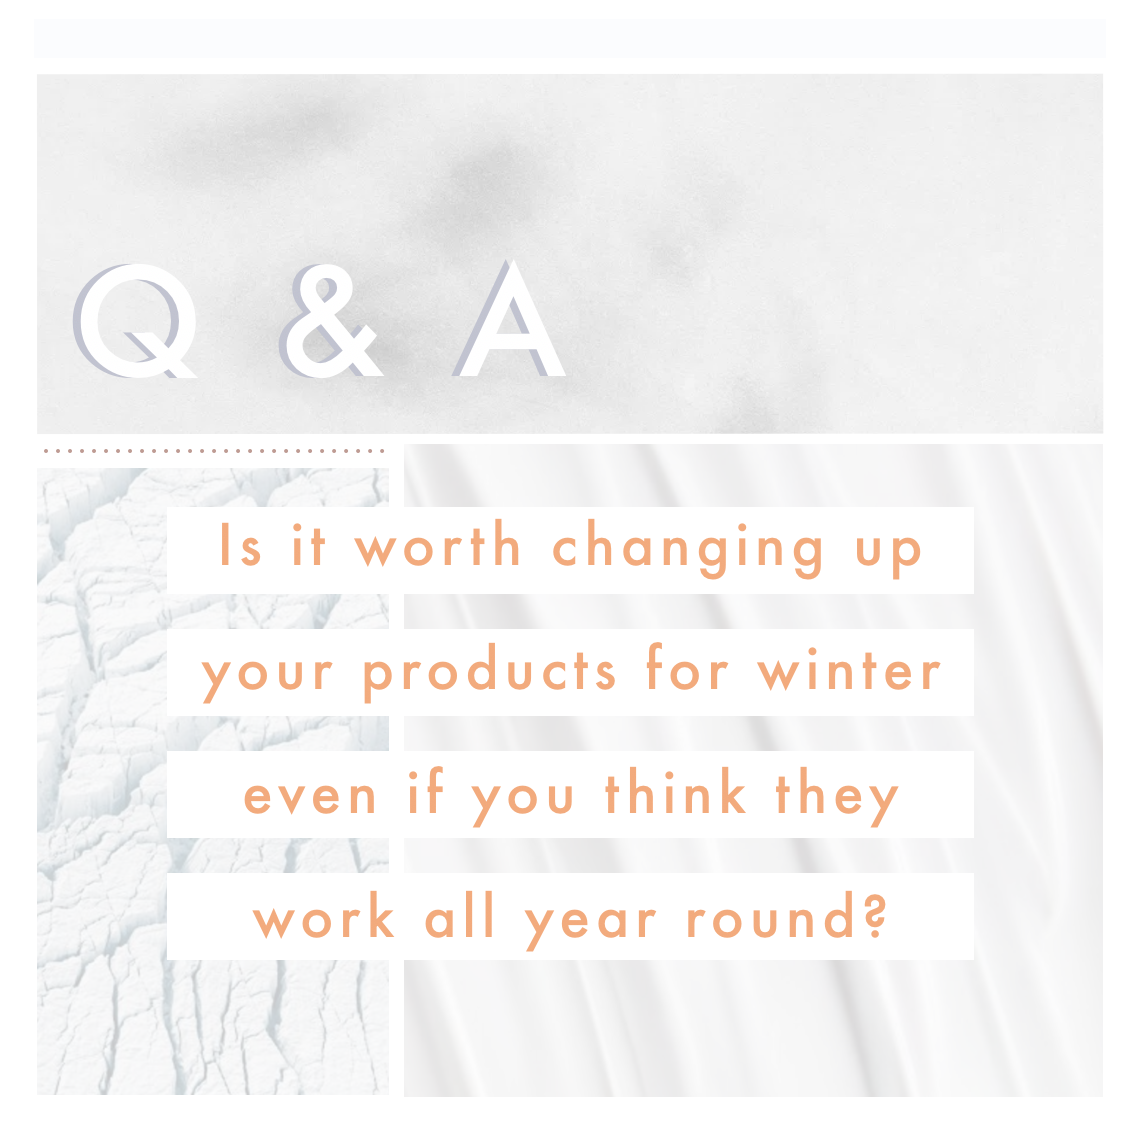 Is it worth changing up your products for winter even if you think they work all year round?